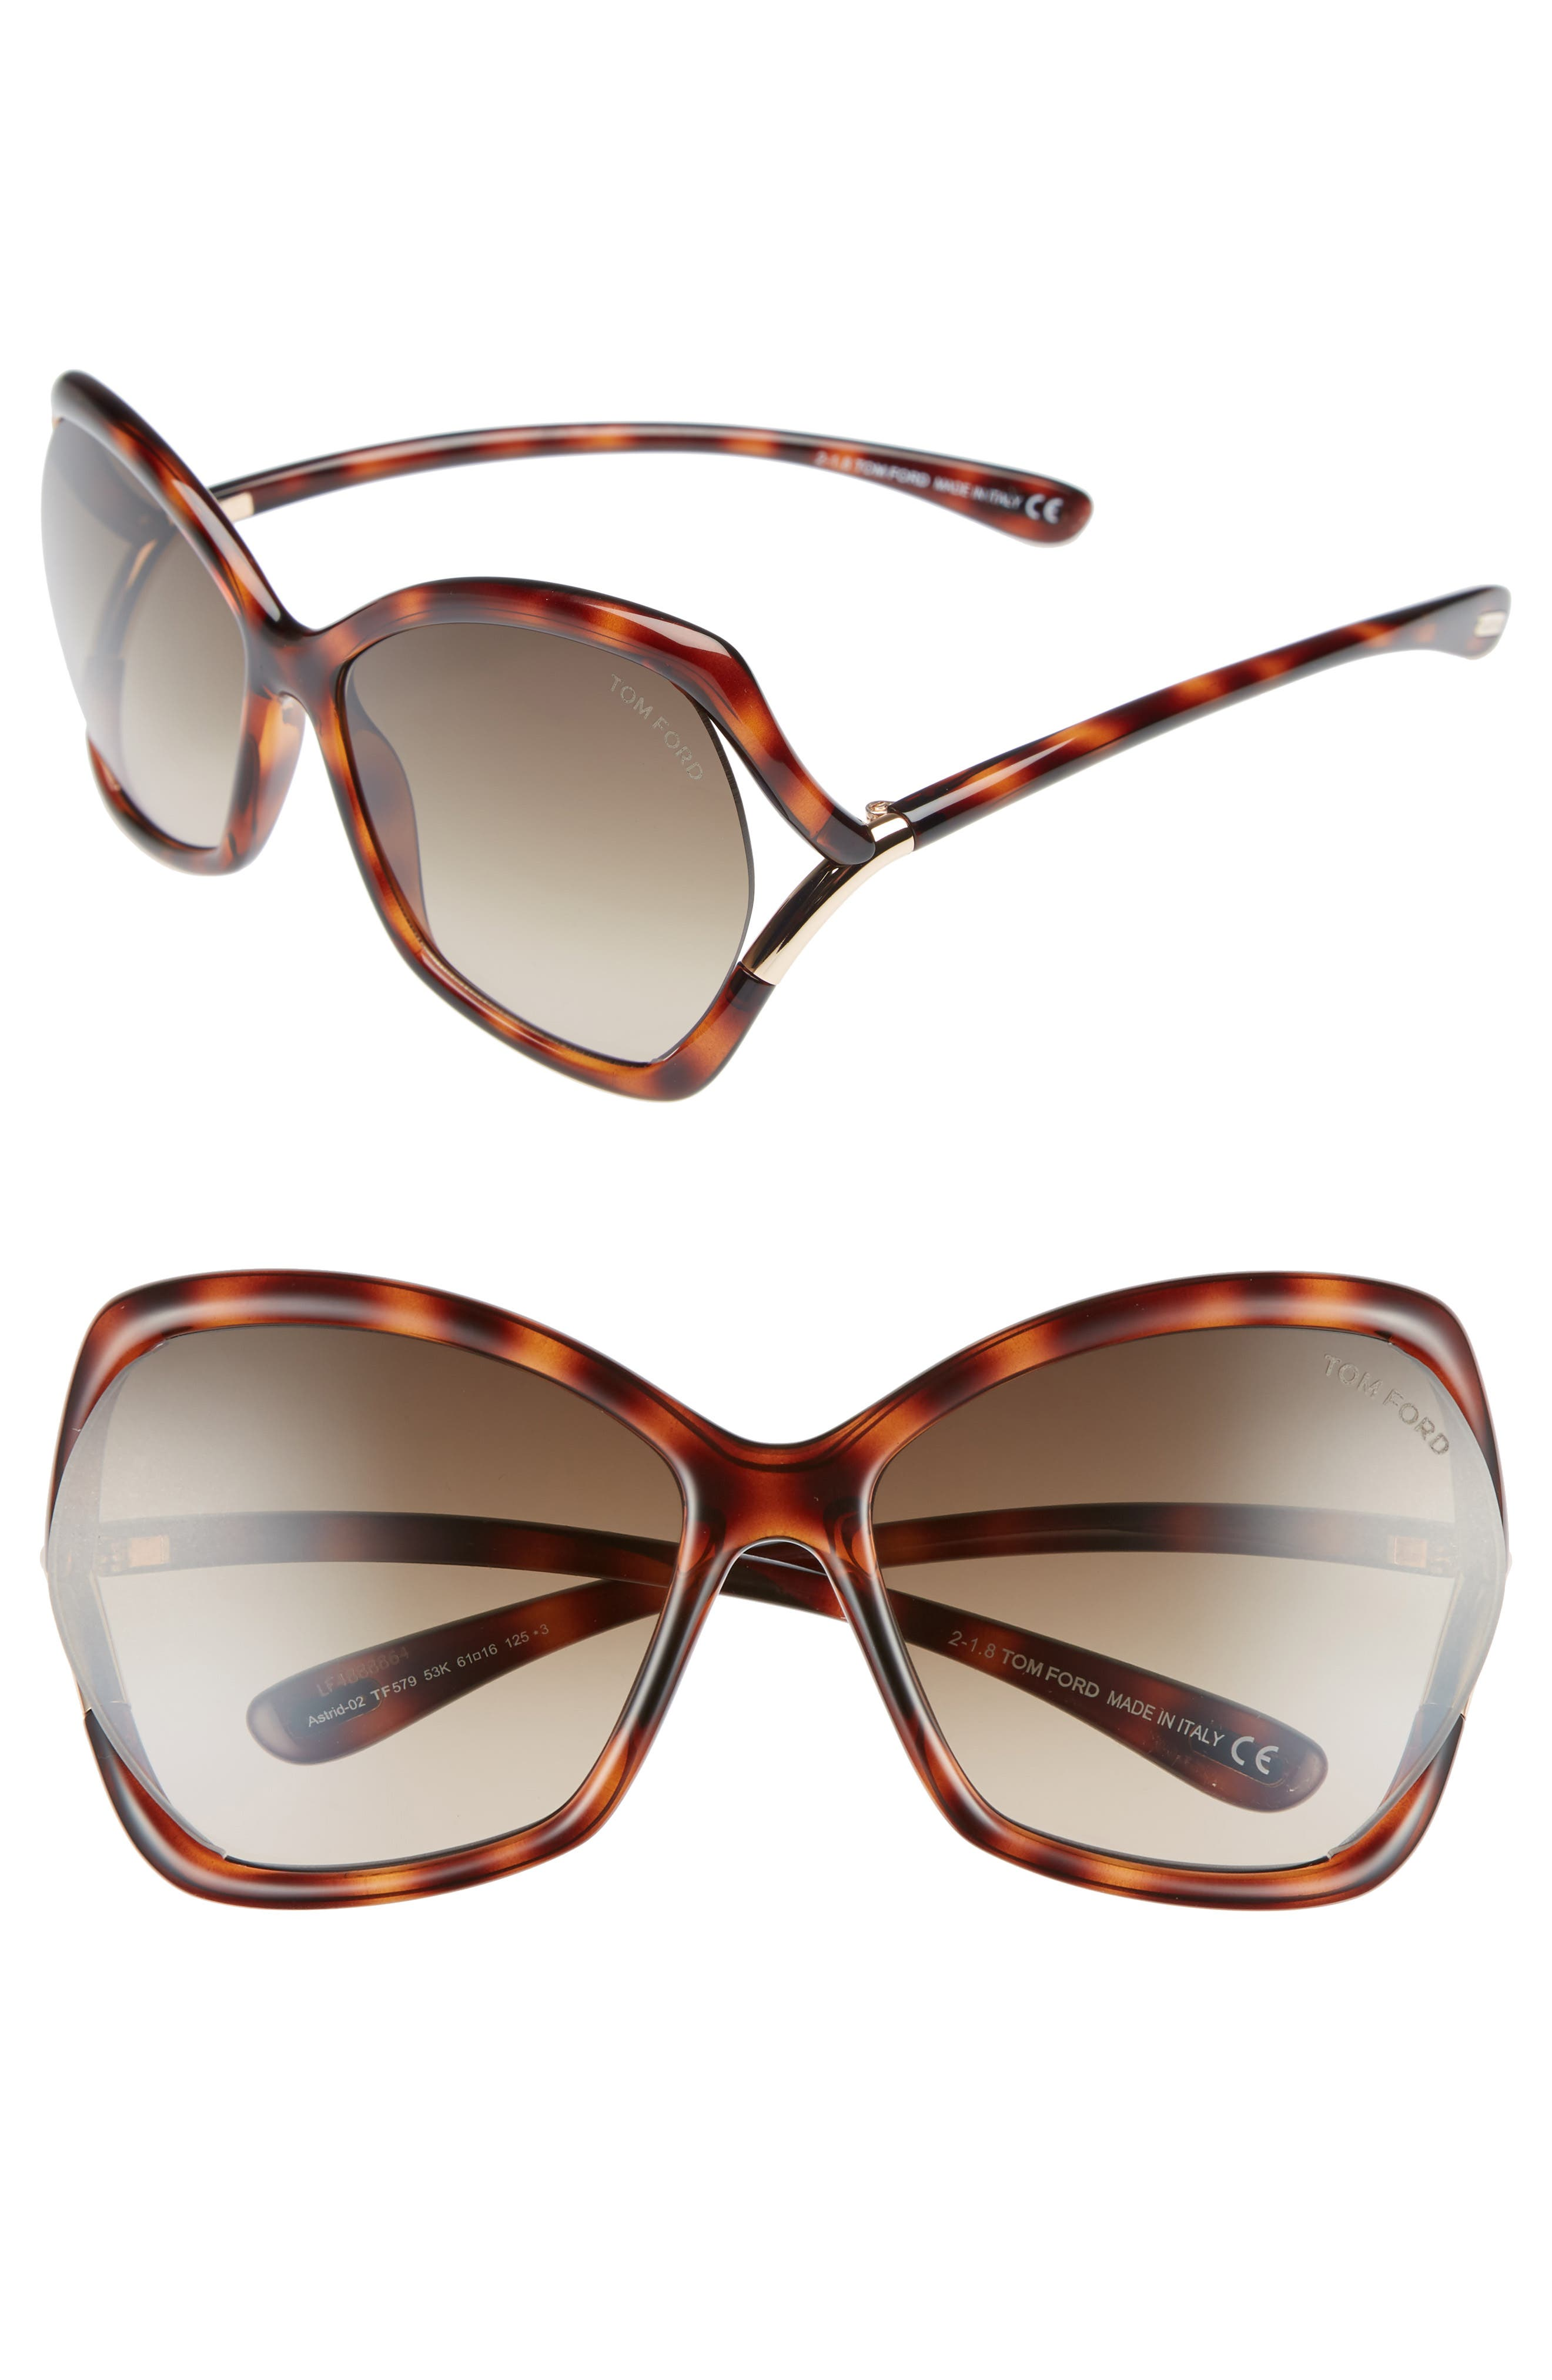 Tom Ford Astrid 61Mm Geometric Sunglasses - Havana/ Rose Gold/ Roviex